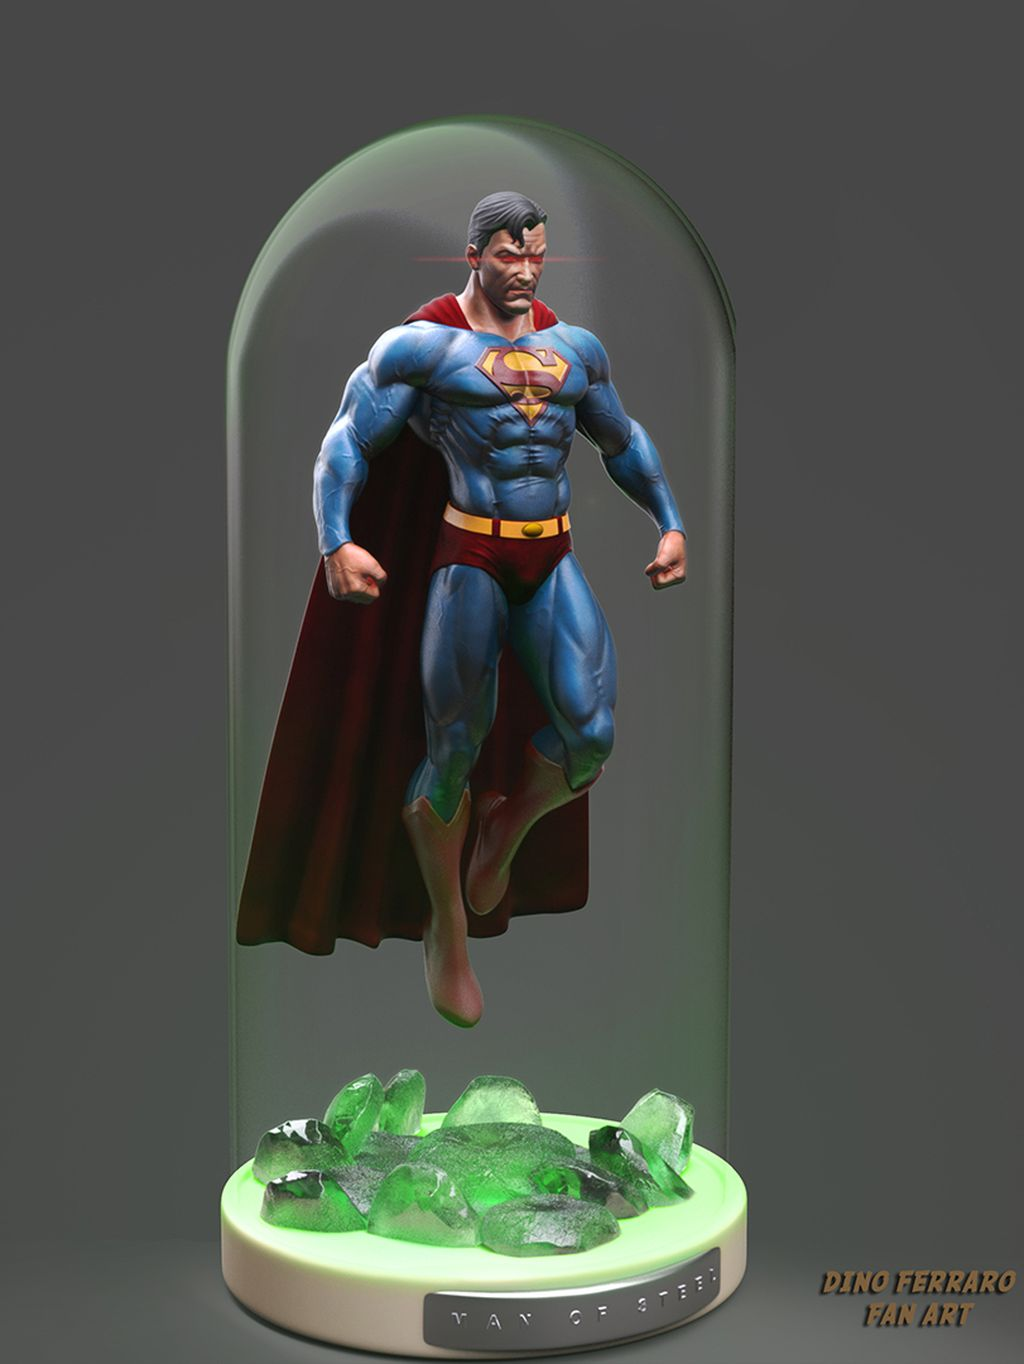 Superman Enclosed Dino Ferraro small.jpg